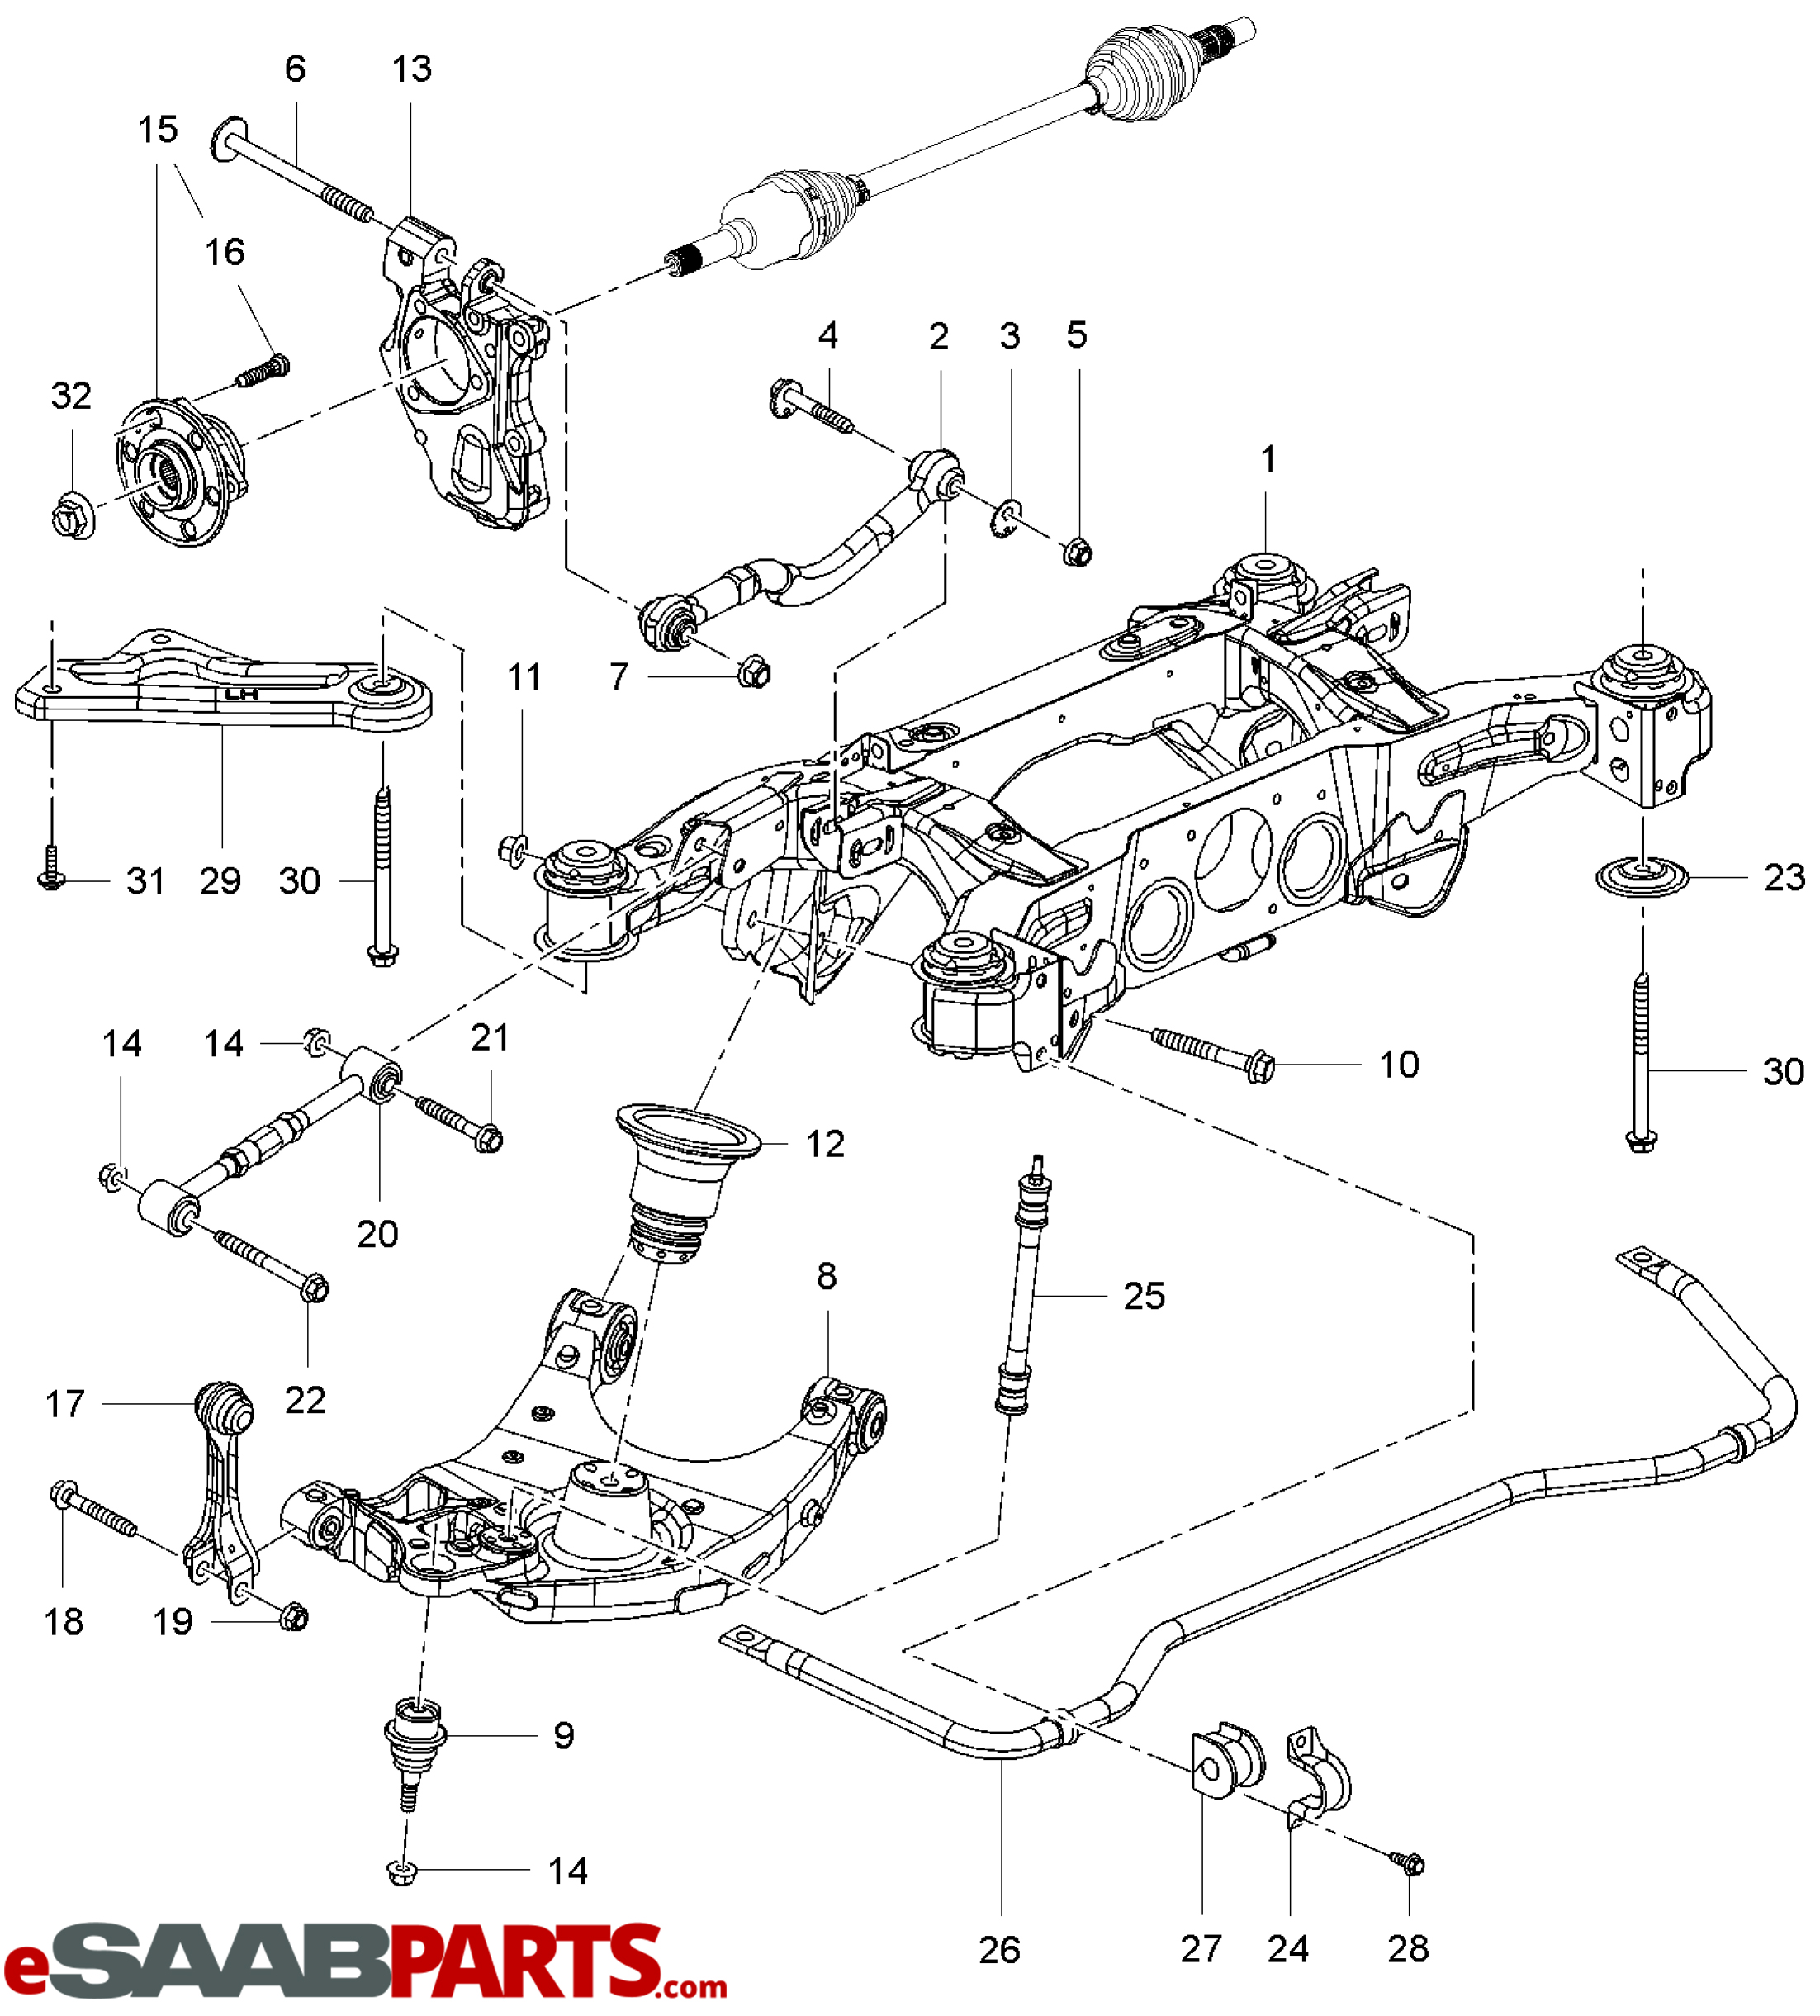 Saab 9 3 Front Suspension Diagram